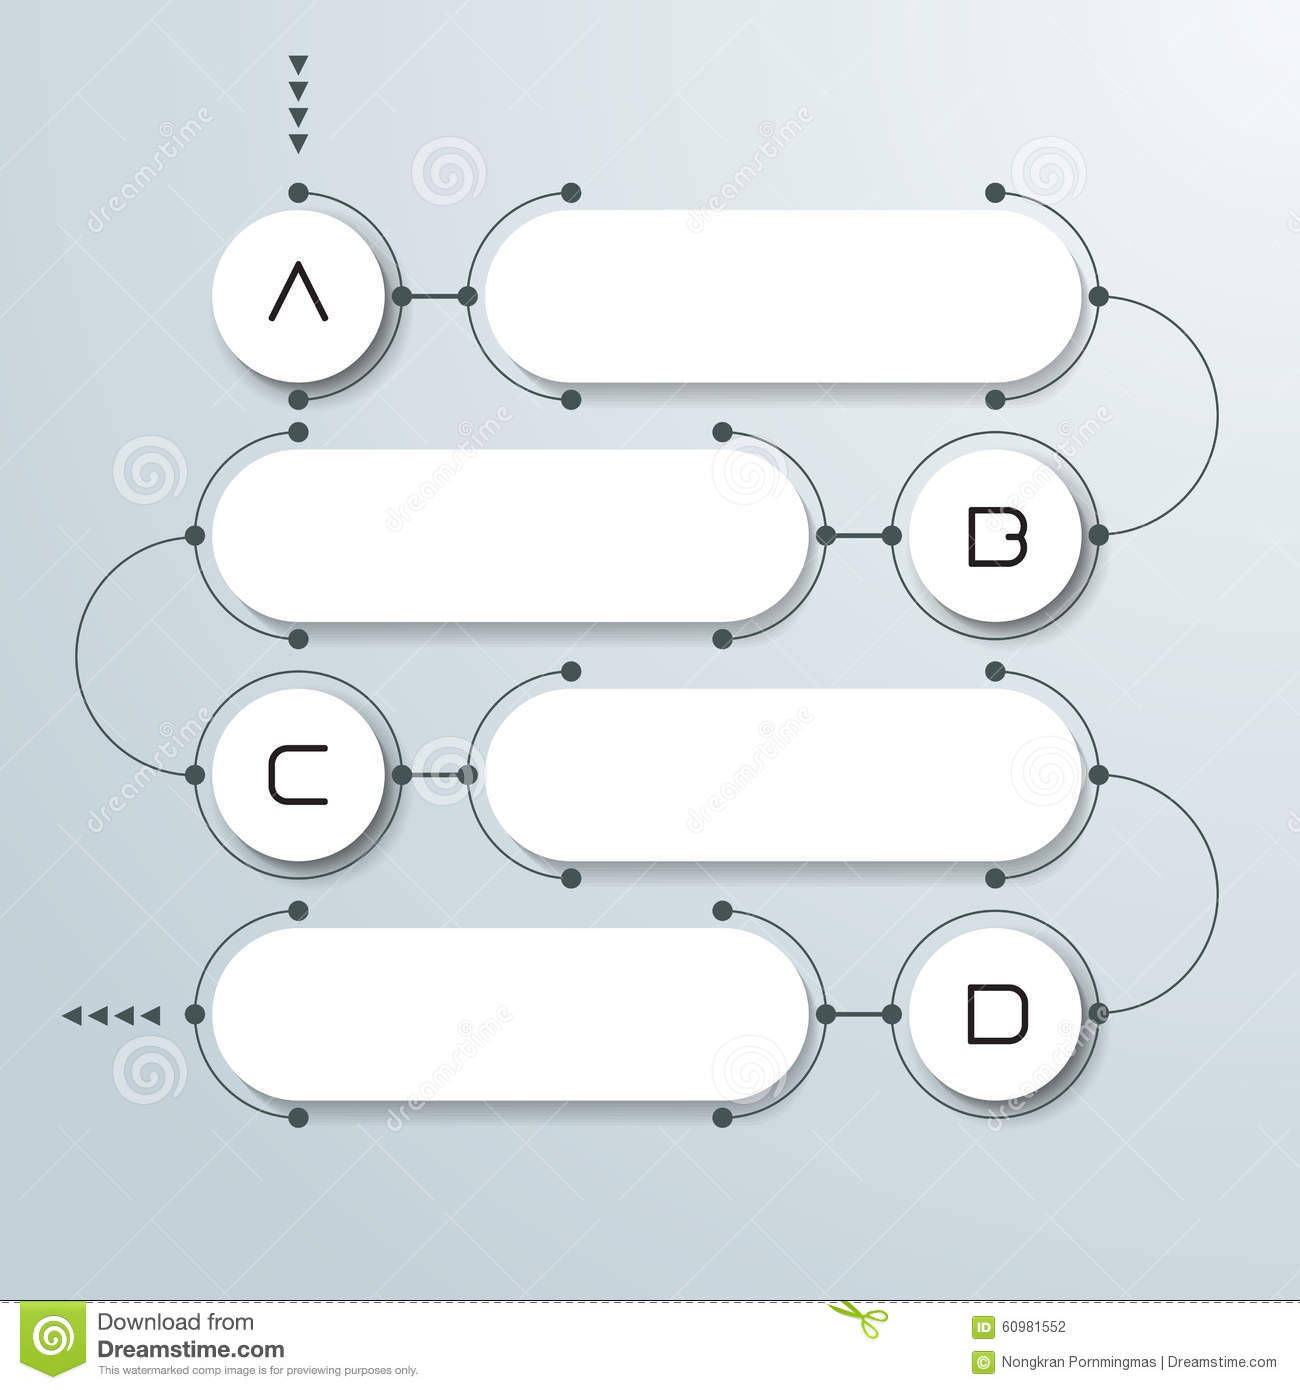 abstract 3d white paper circle on light grey background simple